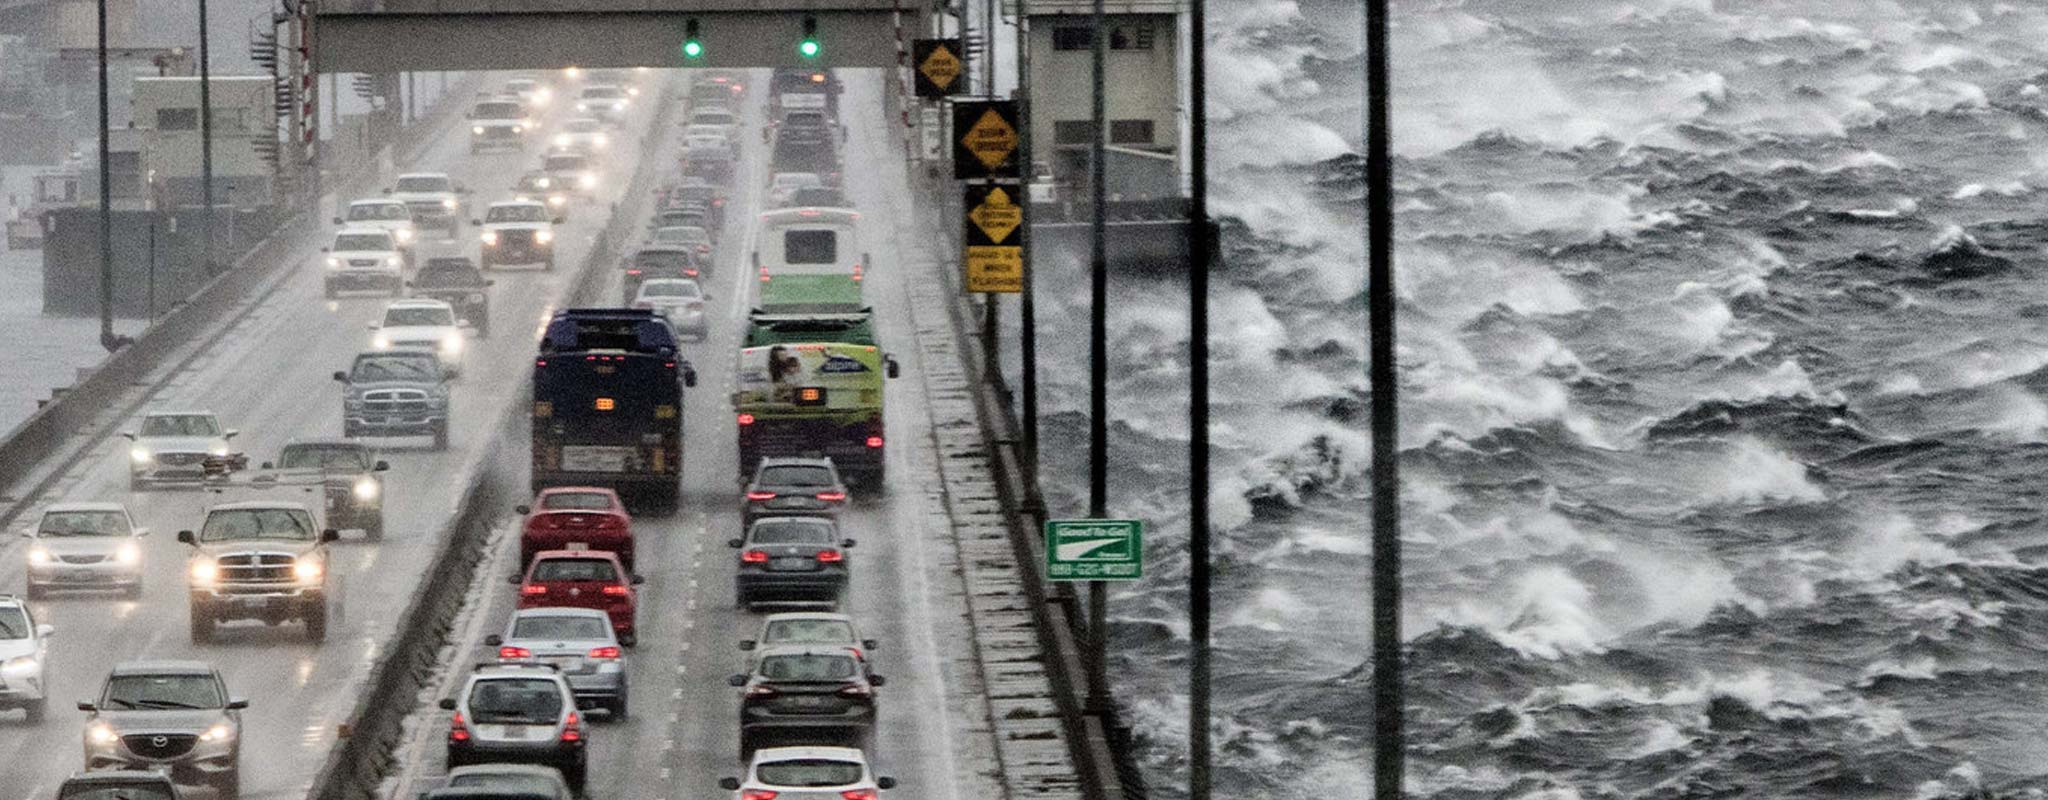 Cars driving over bridge in high winds with white caps on the water.